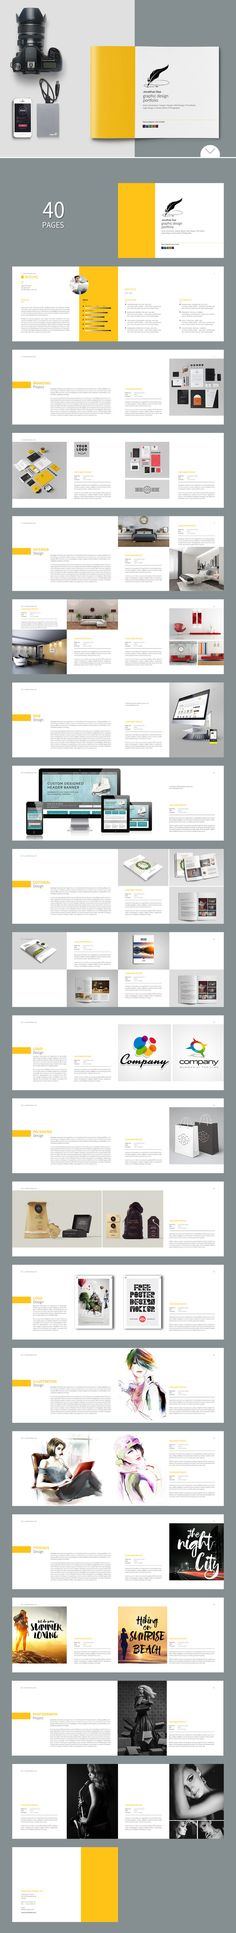 Elegant Photo Album Photo album printing, Print templates and - fashion design brochure template